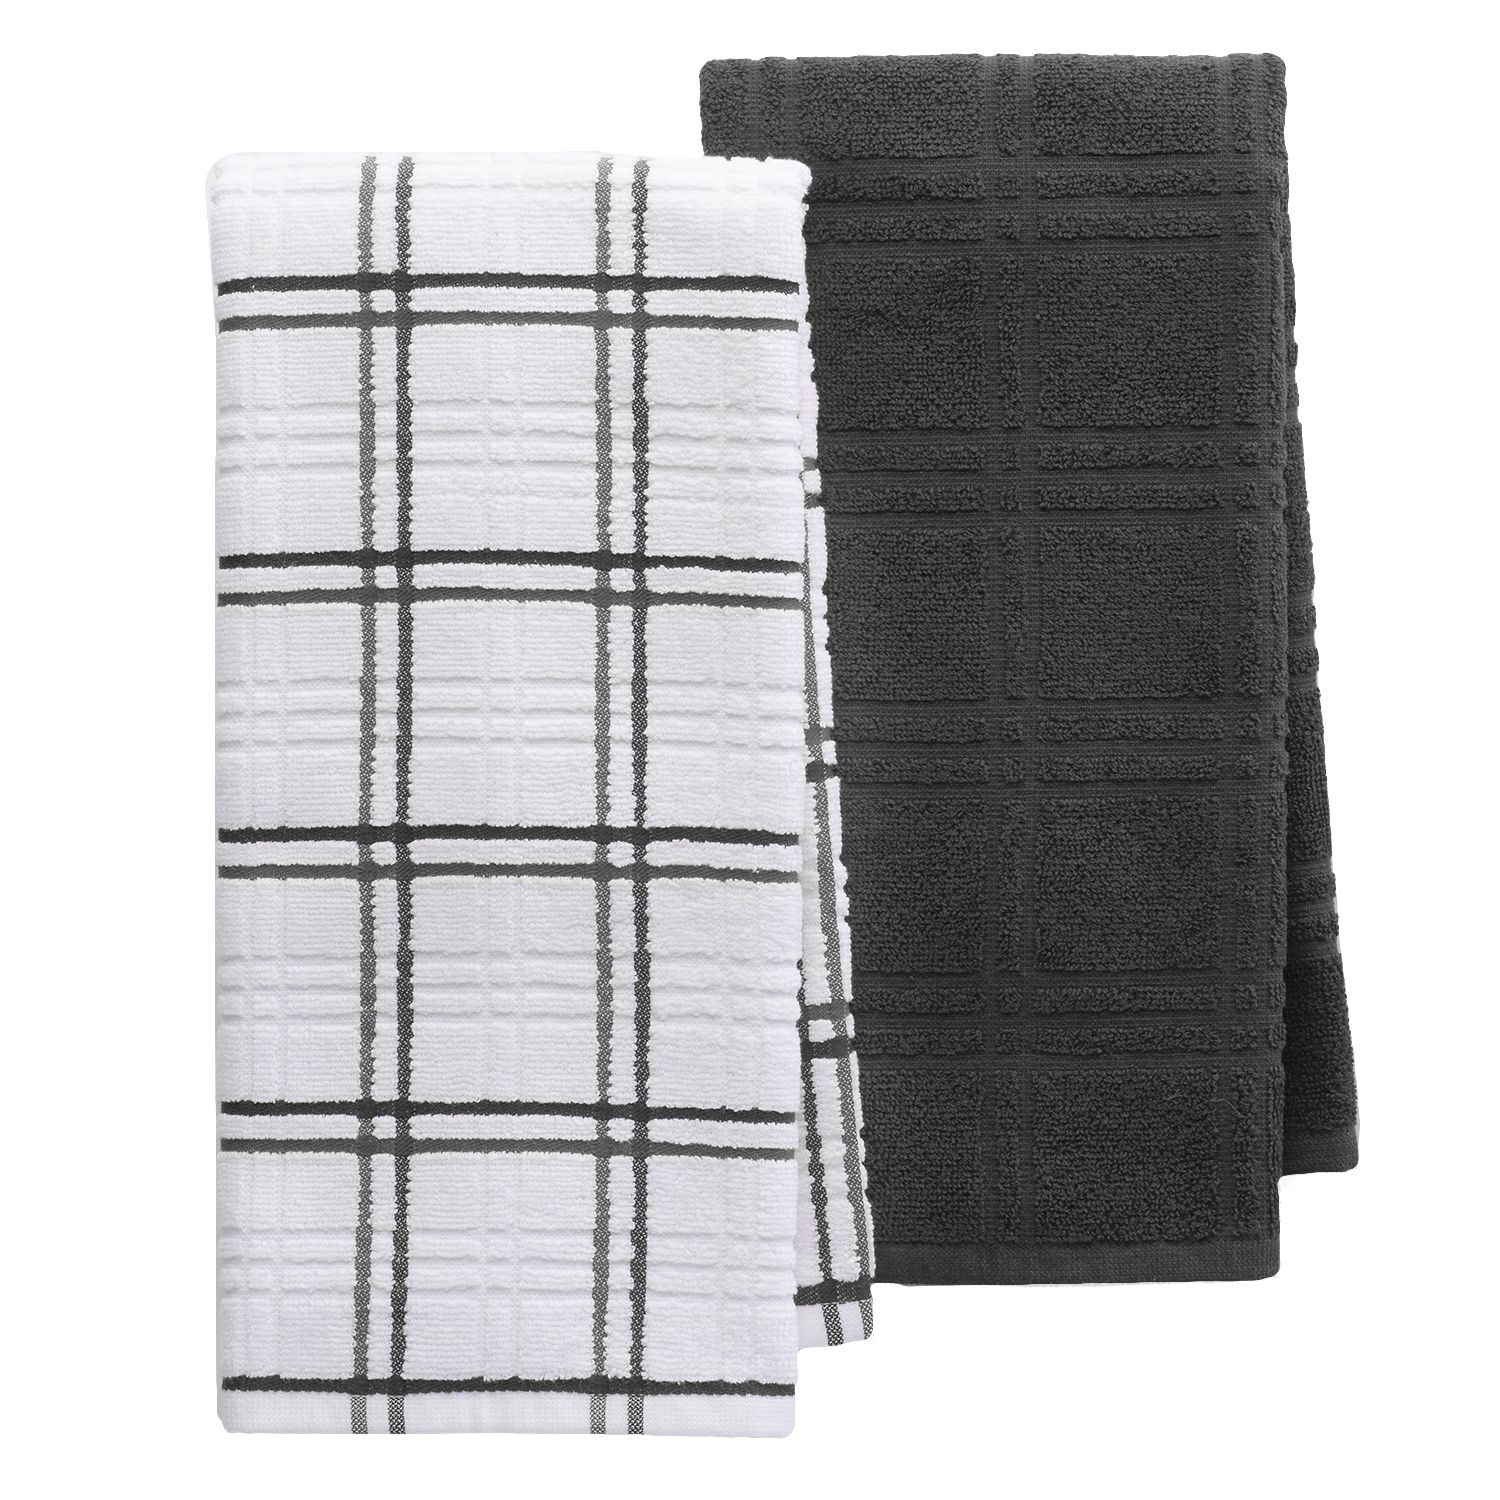 Ordinaire Food Network™ Kitchen Towel 2 Pk.